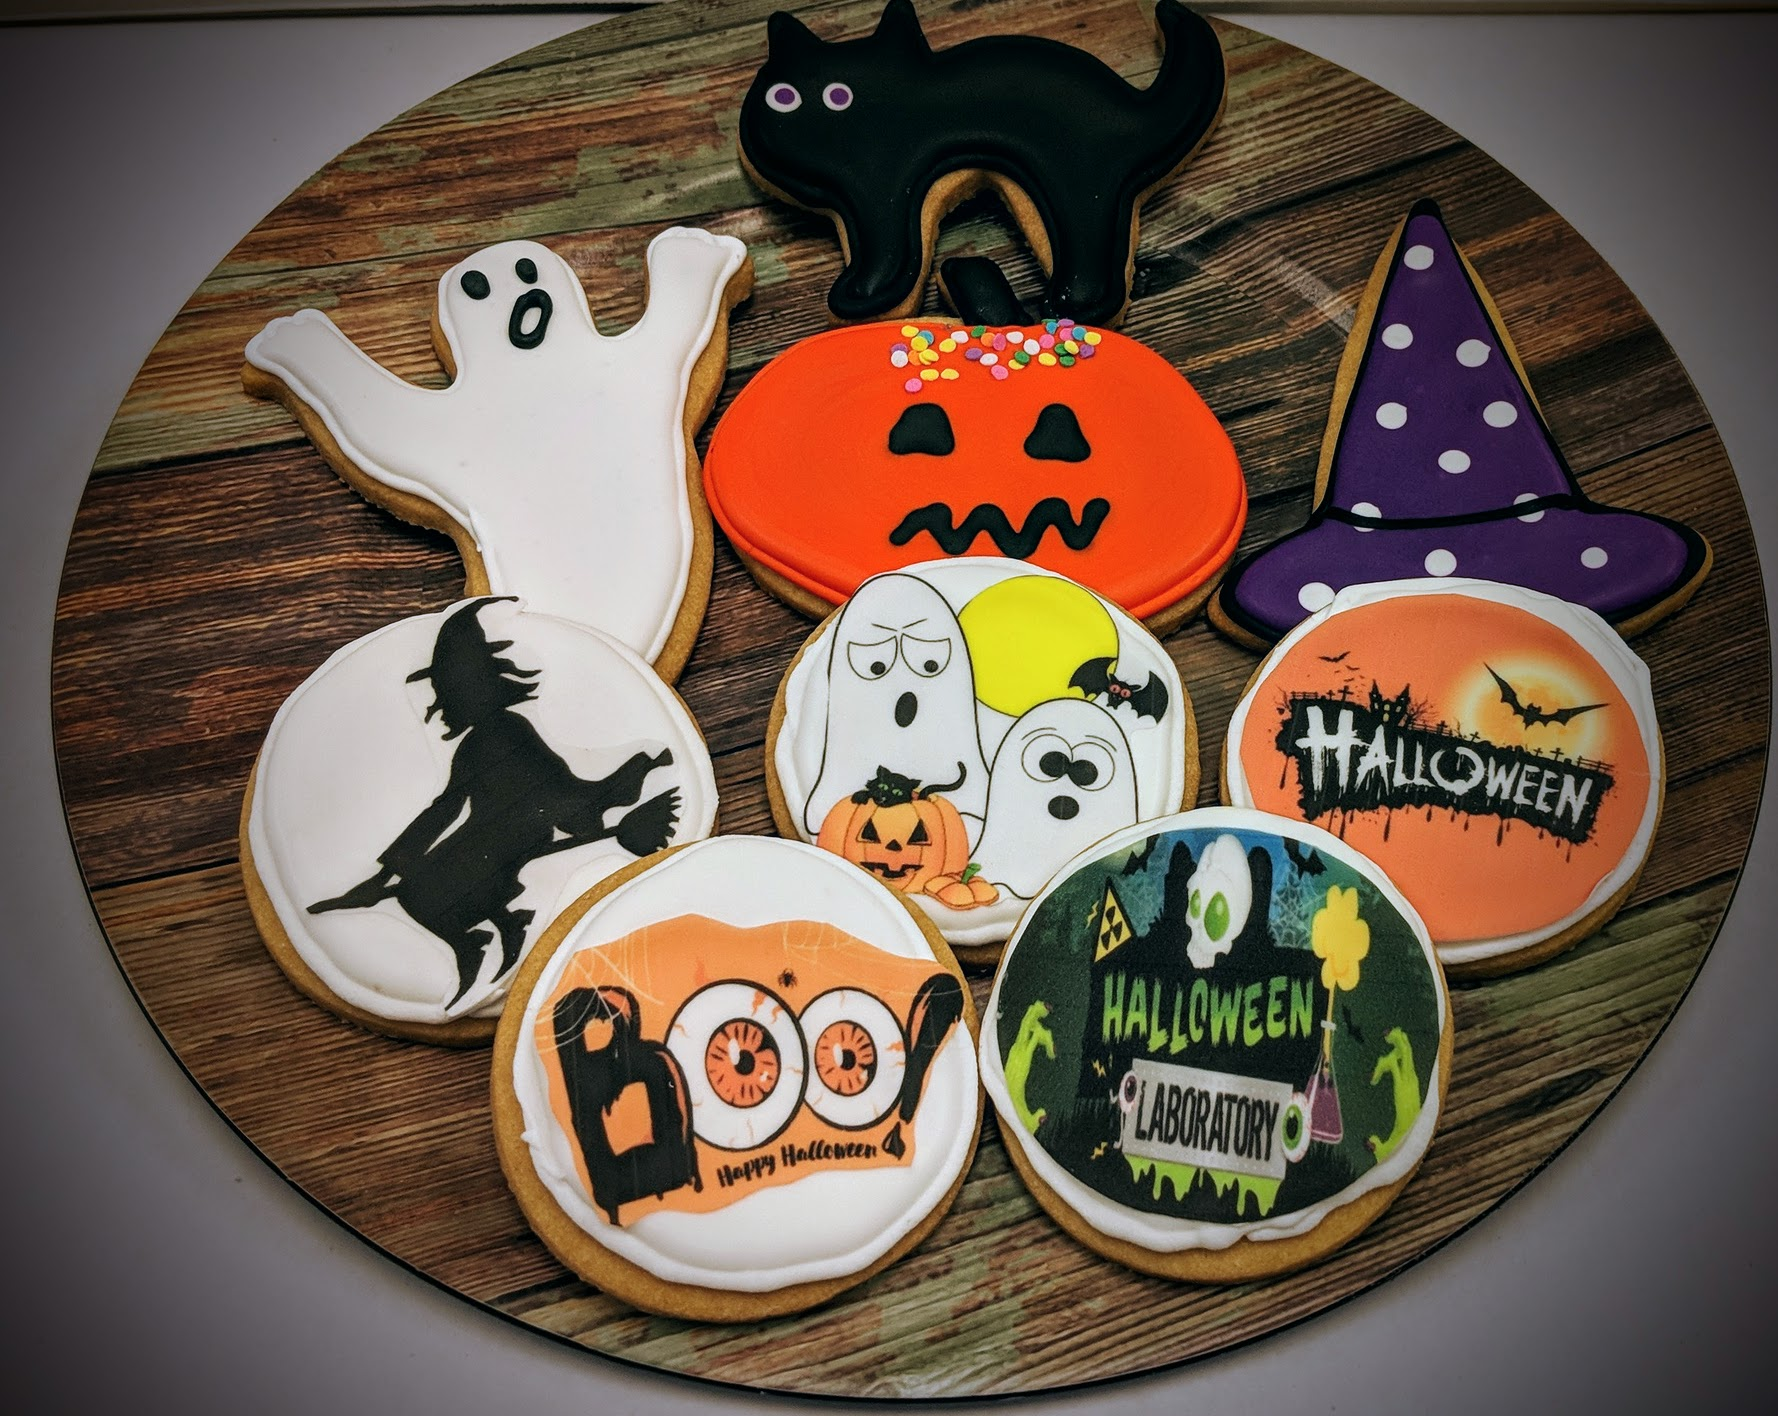 Boo-utiful Cookies